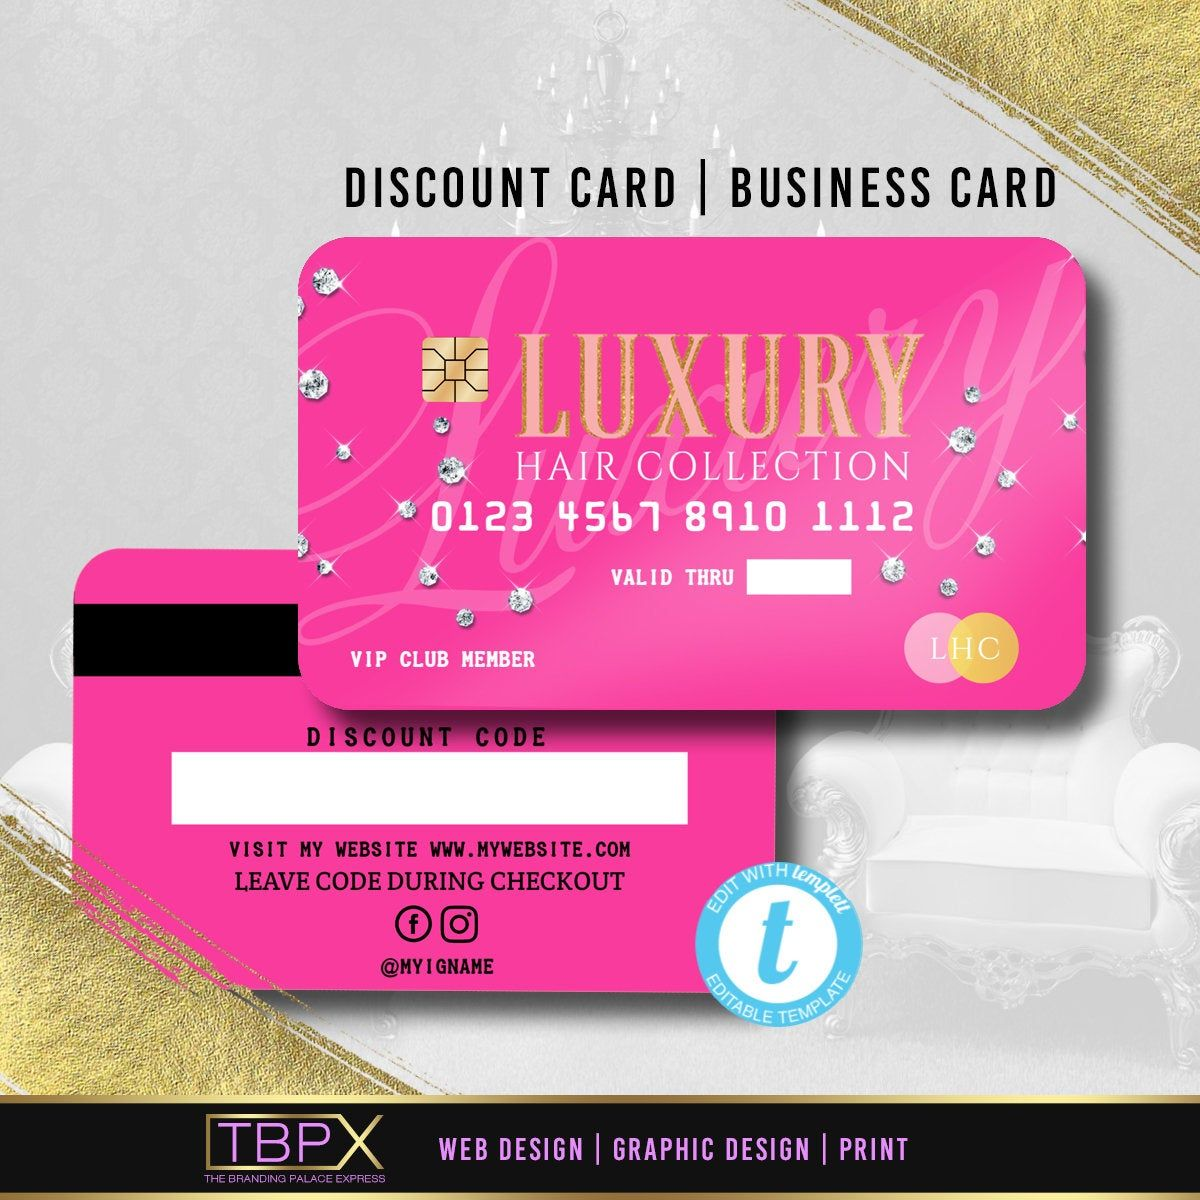 Credit card styled discount card 1 business card with